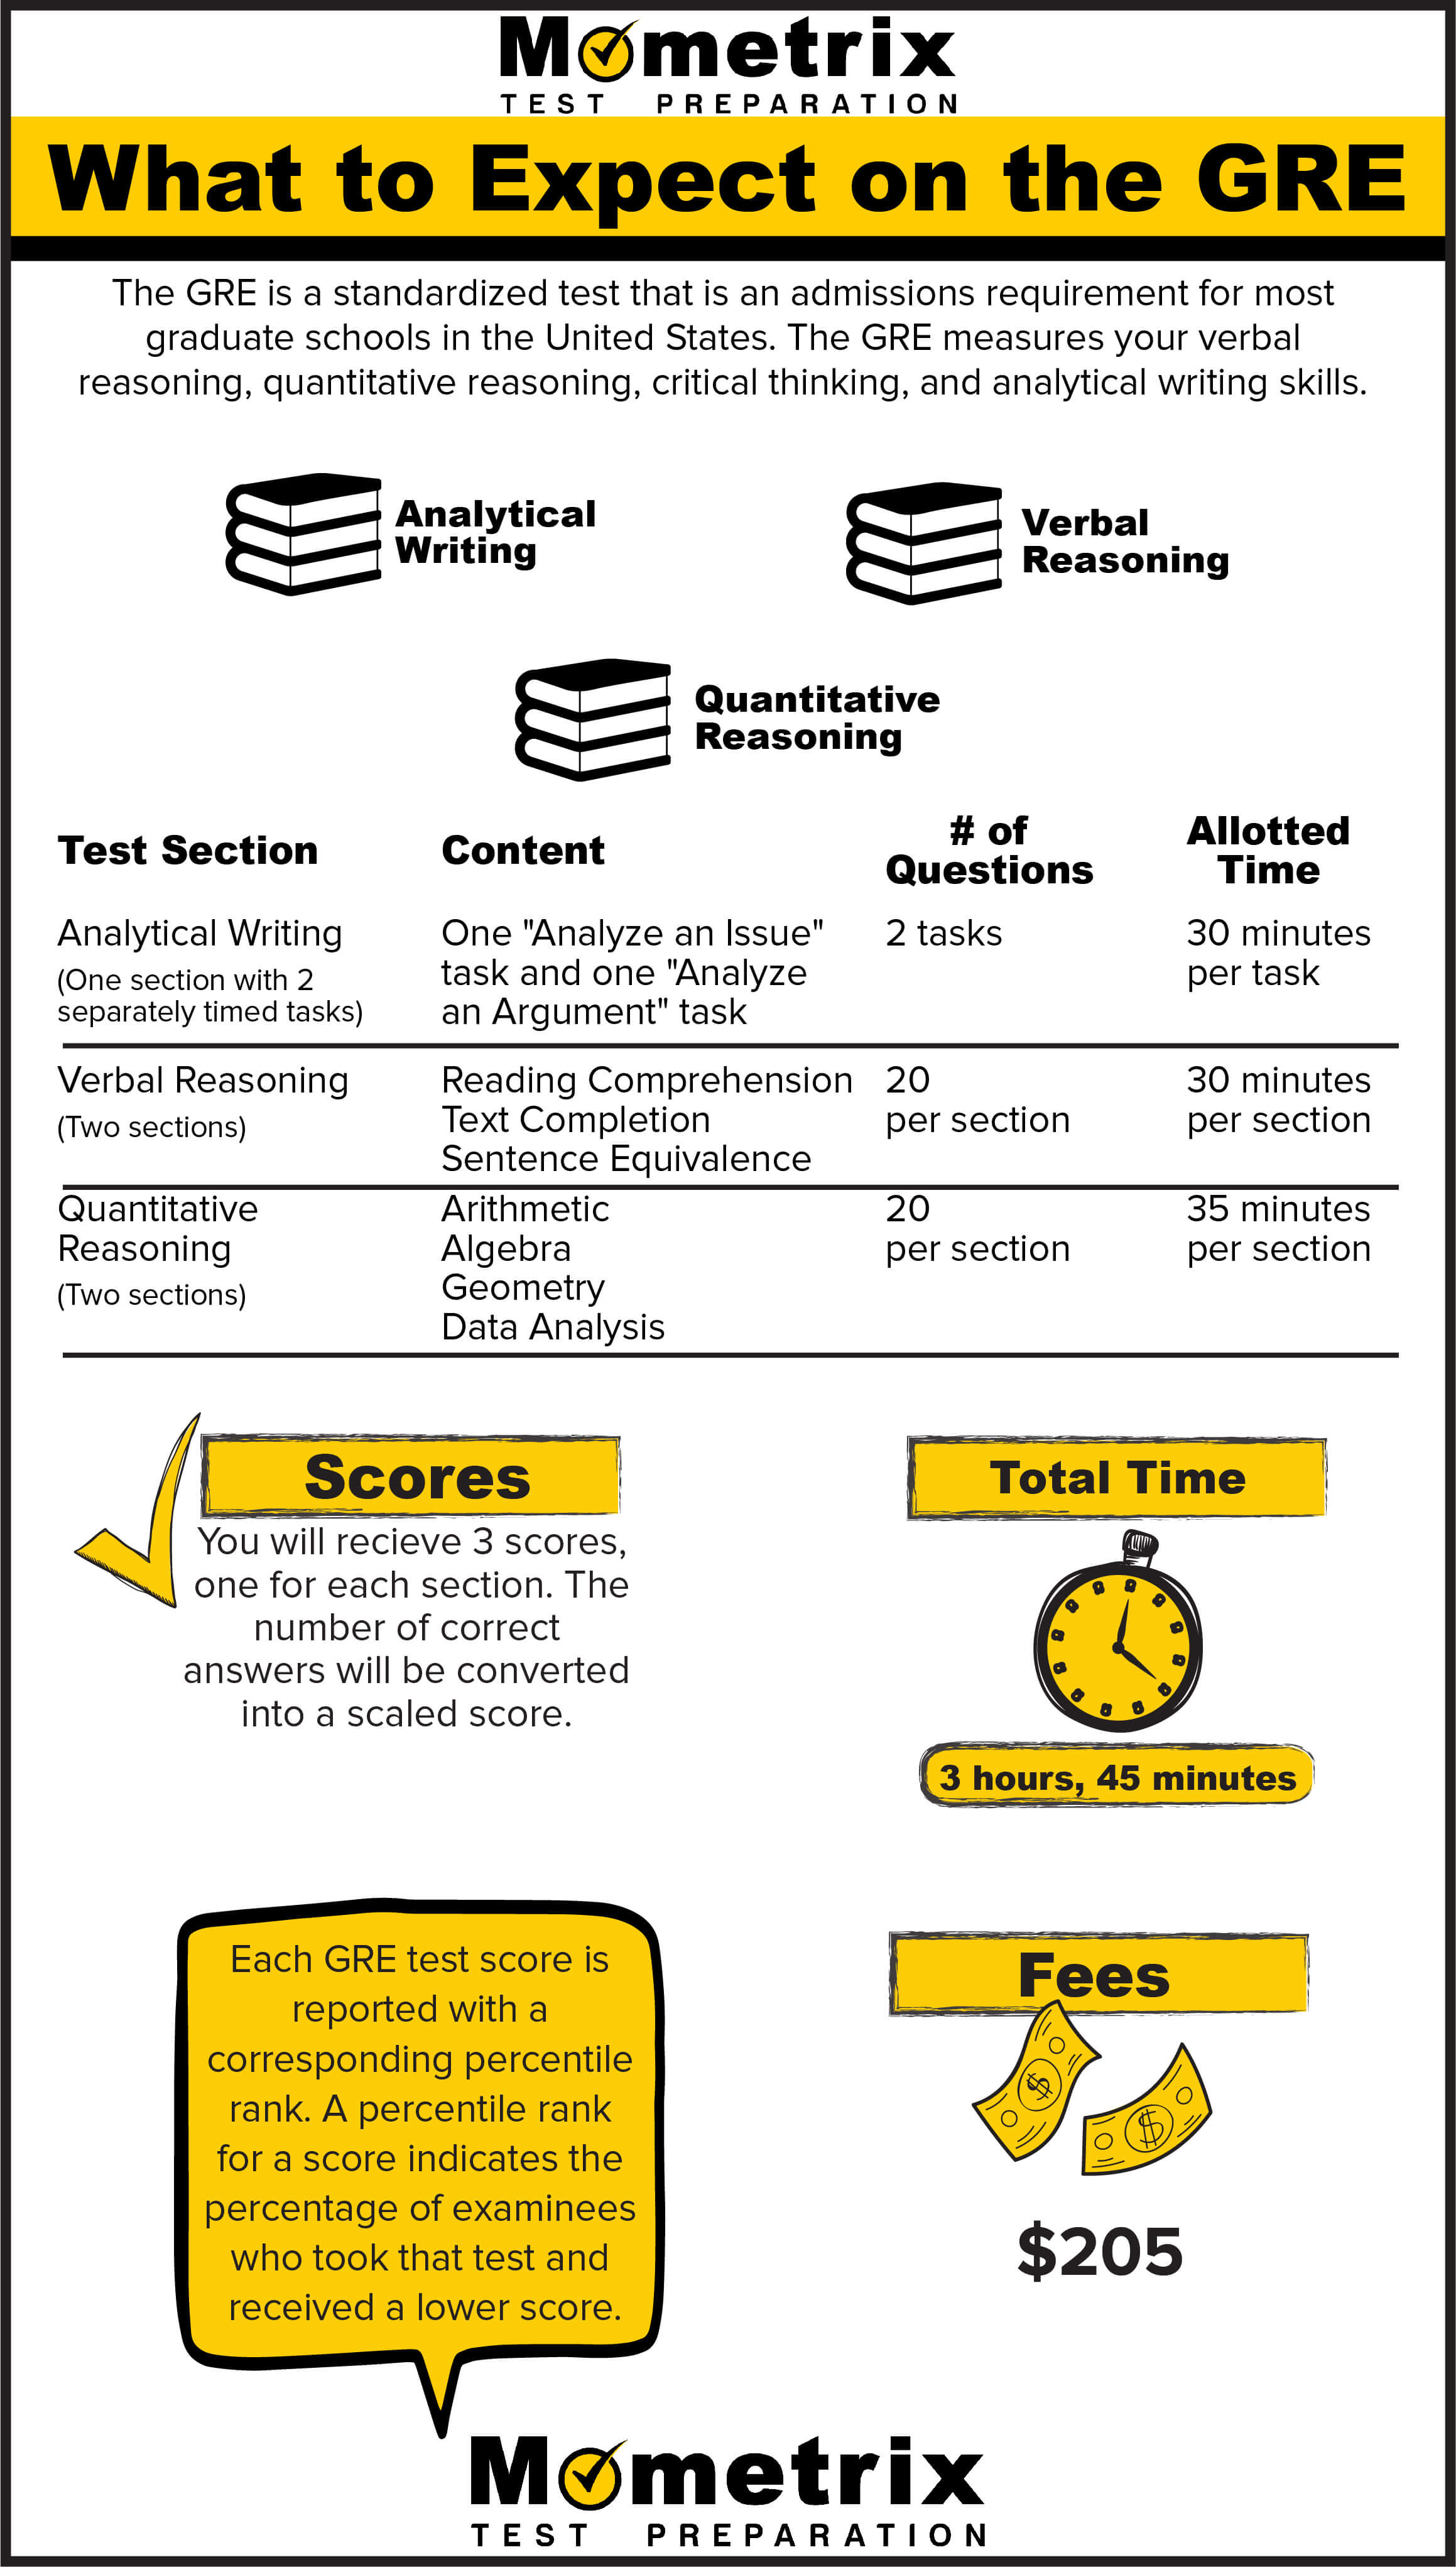 The GRE exam is a standardized test that is an admissions requirement for most graduate schools in the United States.